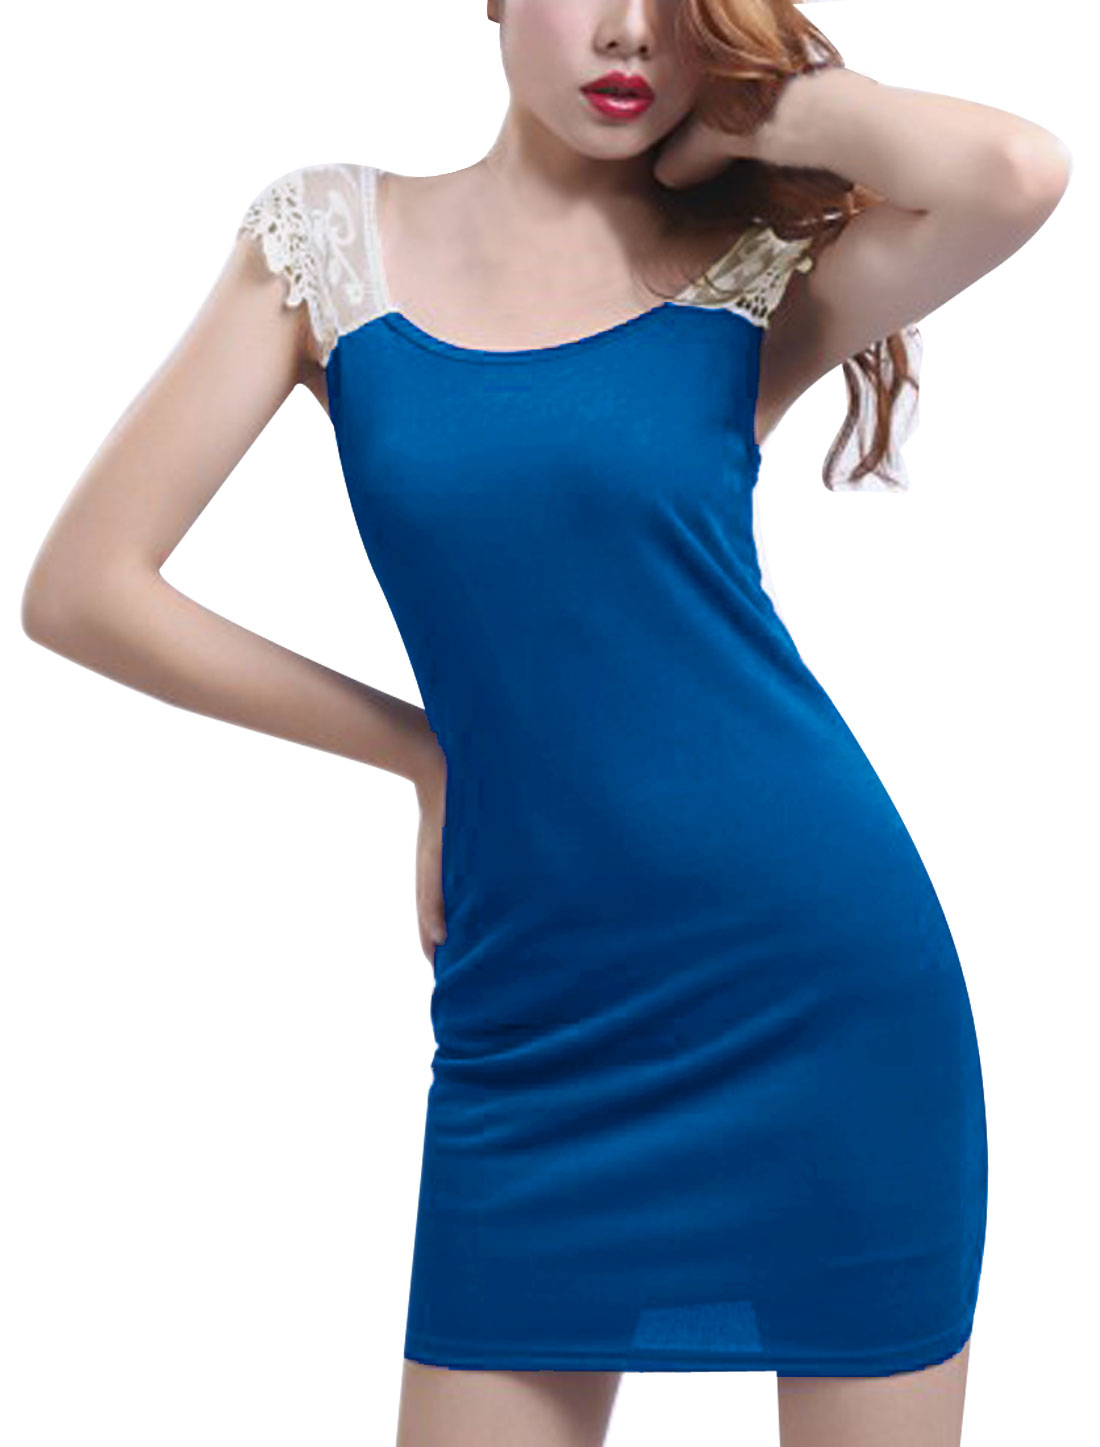 Lady Blue Scoop Neck Sleeveless Lace Panel Top Form-fitting Casual Mini Dress XS